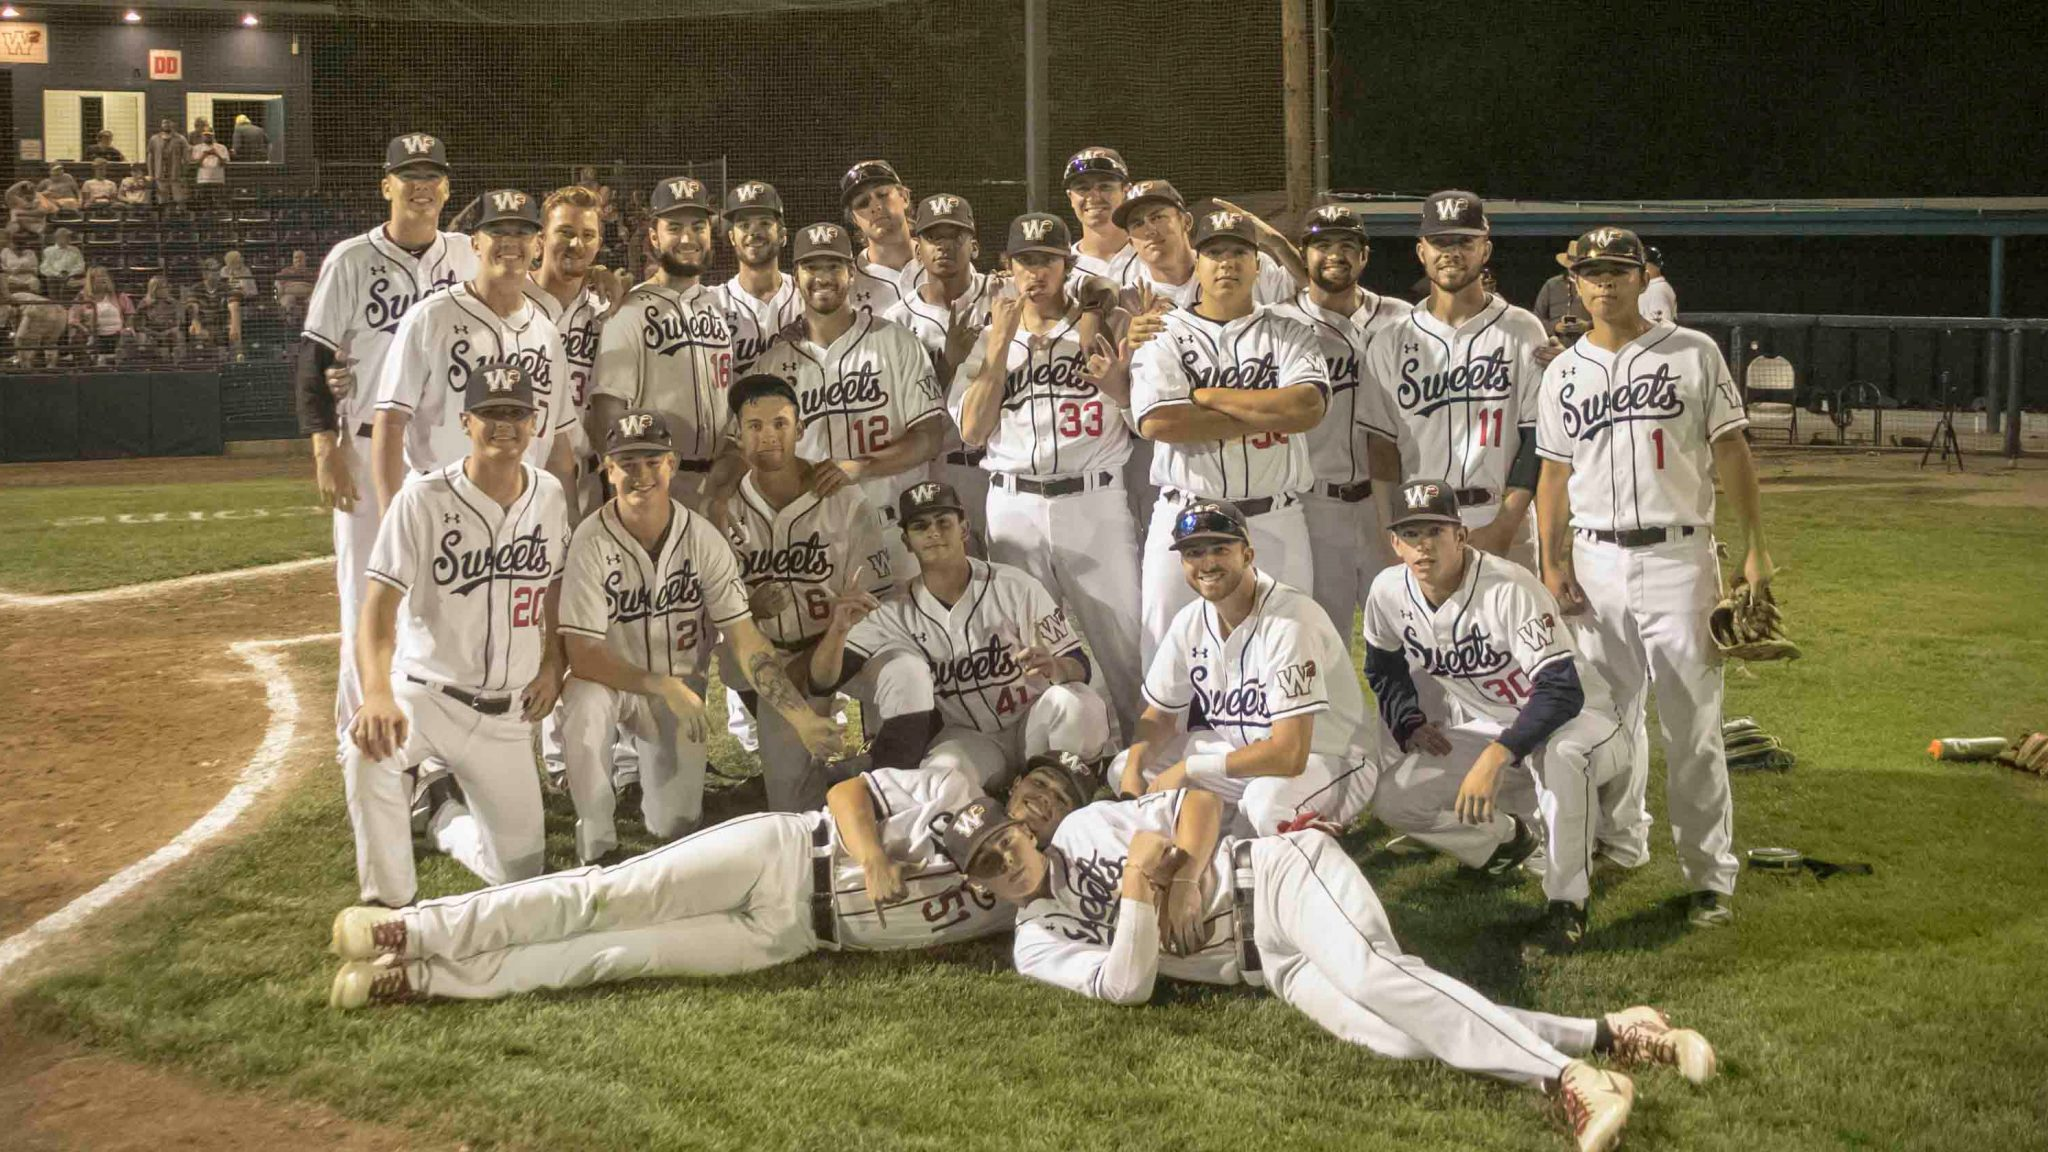 buy online 66e89 38a40 The Sweets hit the road for one final series in the 2018 season. They take  on Cowlitz in a three-game series beginning at 6 35 on Monday.